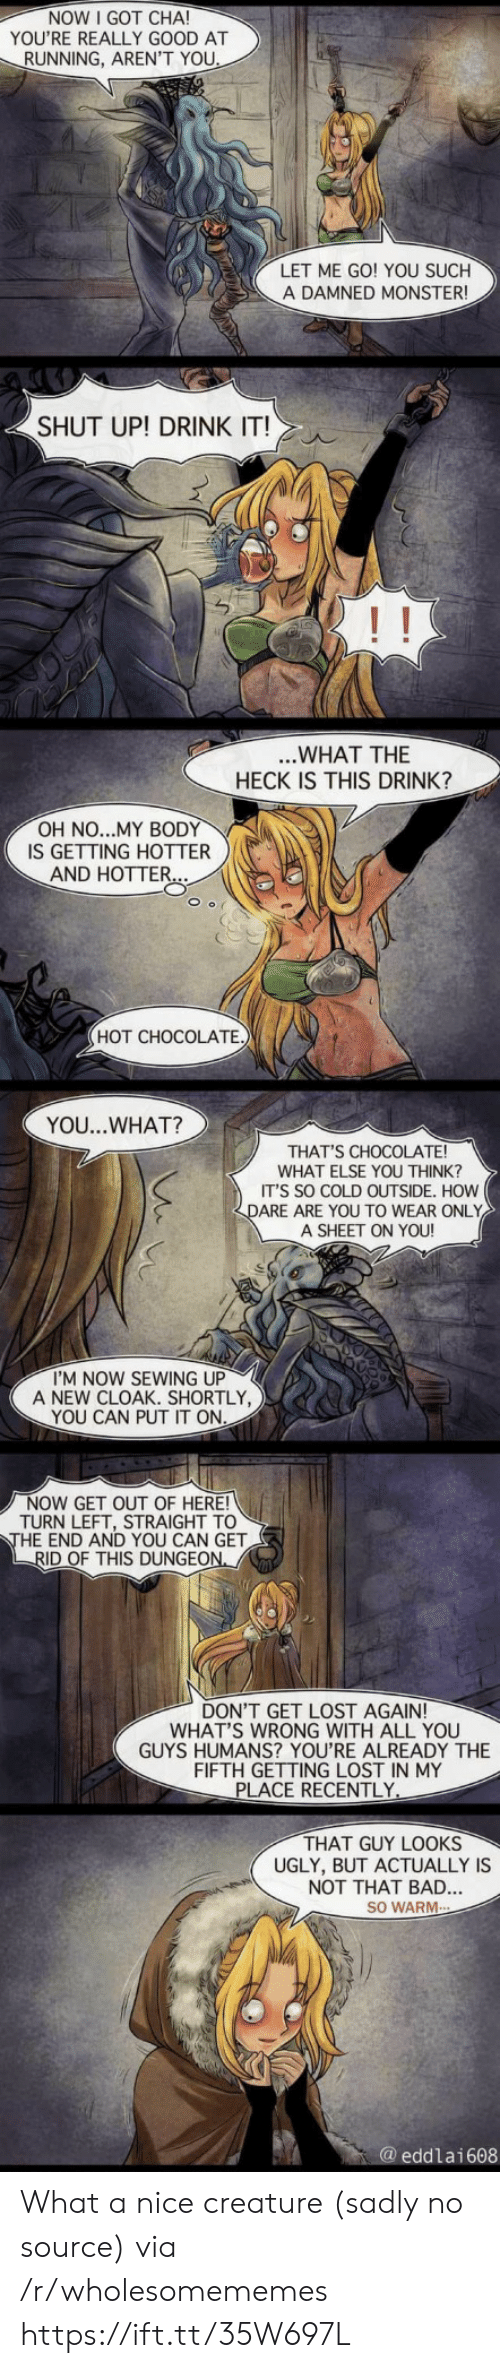 dungeon: NOW I GOT CHA!  YOU'RE REALLY GOOD AT  RUNNING, AREN'T YOU  LET ME GO! YOU SUCH  A DAMNED MONSTER  SHUT UP! DRINK IT!  ...WHAT THE  HECK IS THIS DRINK?  OH NO...MY BODY  IS GETTING HOTTER  AND HOTTER...  HOT CHOCOLATE)  YOU...WHAT?  THAT'S CHOCOLATE!  WHAT ELSE YOU THINK?  IT'S SO COLD OUTSIDE. HOW  DARE ARE YOU TO WEAR ONLY  A SHEET ON YOU!  I'M NOW SEWING UP  A NEW CLOAK. SHORTLY,  YOU CAN PUT IT ON  NOW GET OUT OF HERE!  TURN LEFT, STRAIGHT TO  THE END AND YOU CAN GET  RID OF THIS DUNGEON  DON'T GET LOST AGAIN!  WHAT'S WRONG WITH ALL YOU  GUYS HUMANS? YOU'RE ALREADY THE  FIFTH GETTING LOST IN MY  PLACE RECENTLY  THAT GUY LOOKS  UGLY, BUT ACTUALLY IS  NOT THAT BAD..  SO WARM  @eddlai608 What a nice creature (sadly no source) via /r/wholesomememes https://ift.tt/35W697L